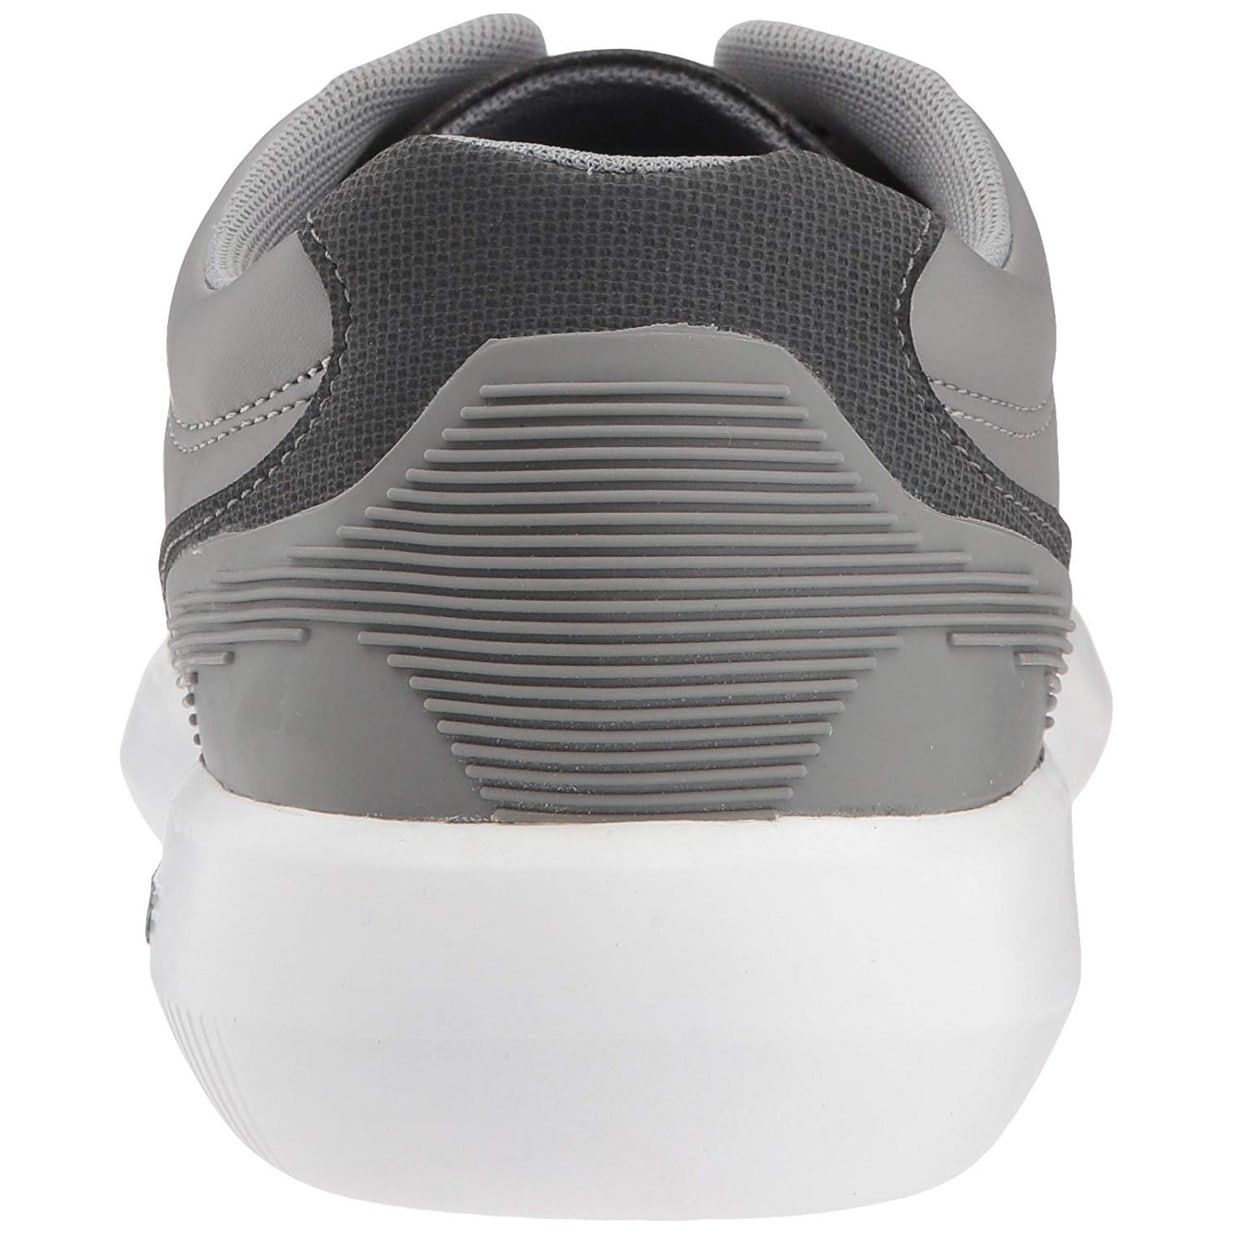 bfd8b4fb98ae80 Shop Lacoste Men s Avantor Sneakers - grey dkgry synthetic - 10.5 - Free  Shipping Today - Overstock.com - 25692713